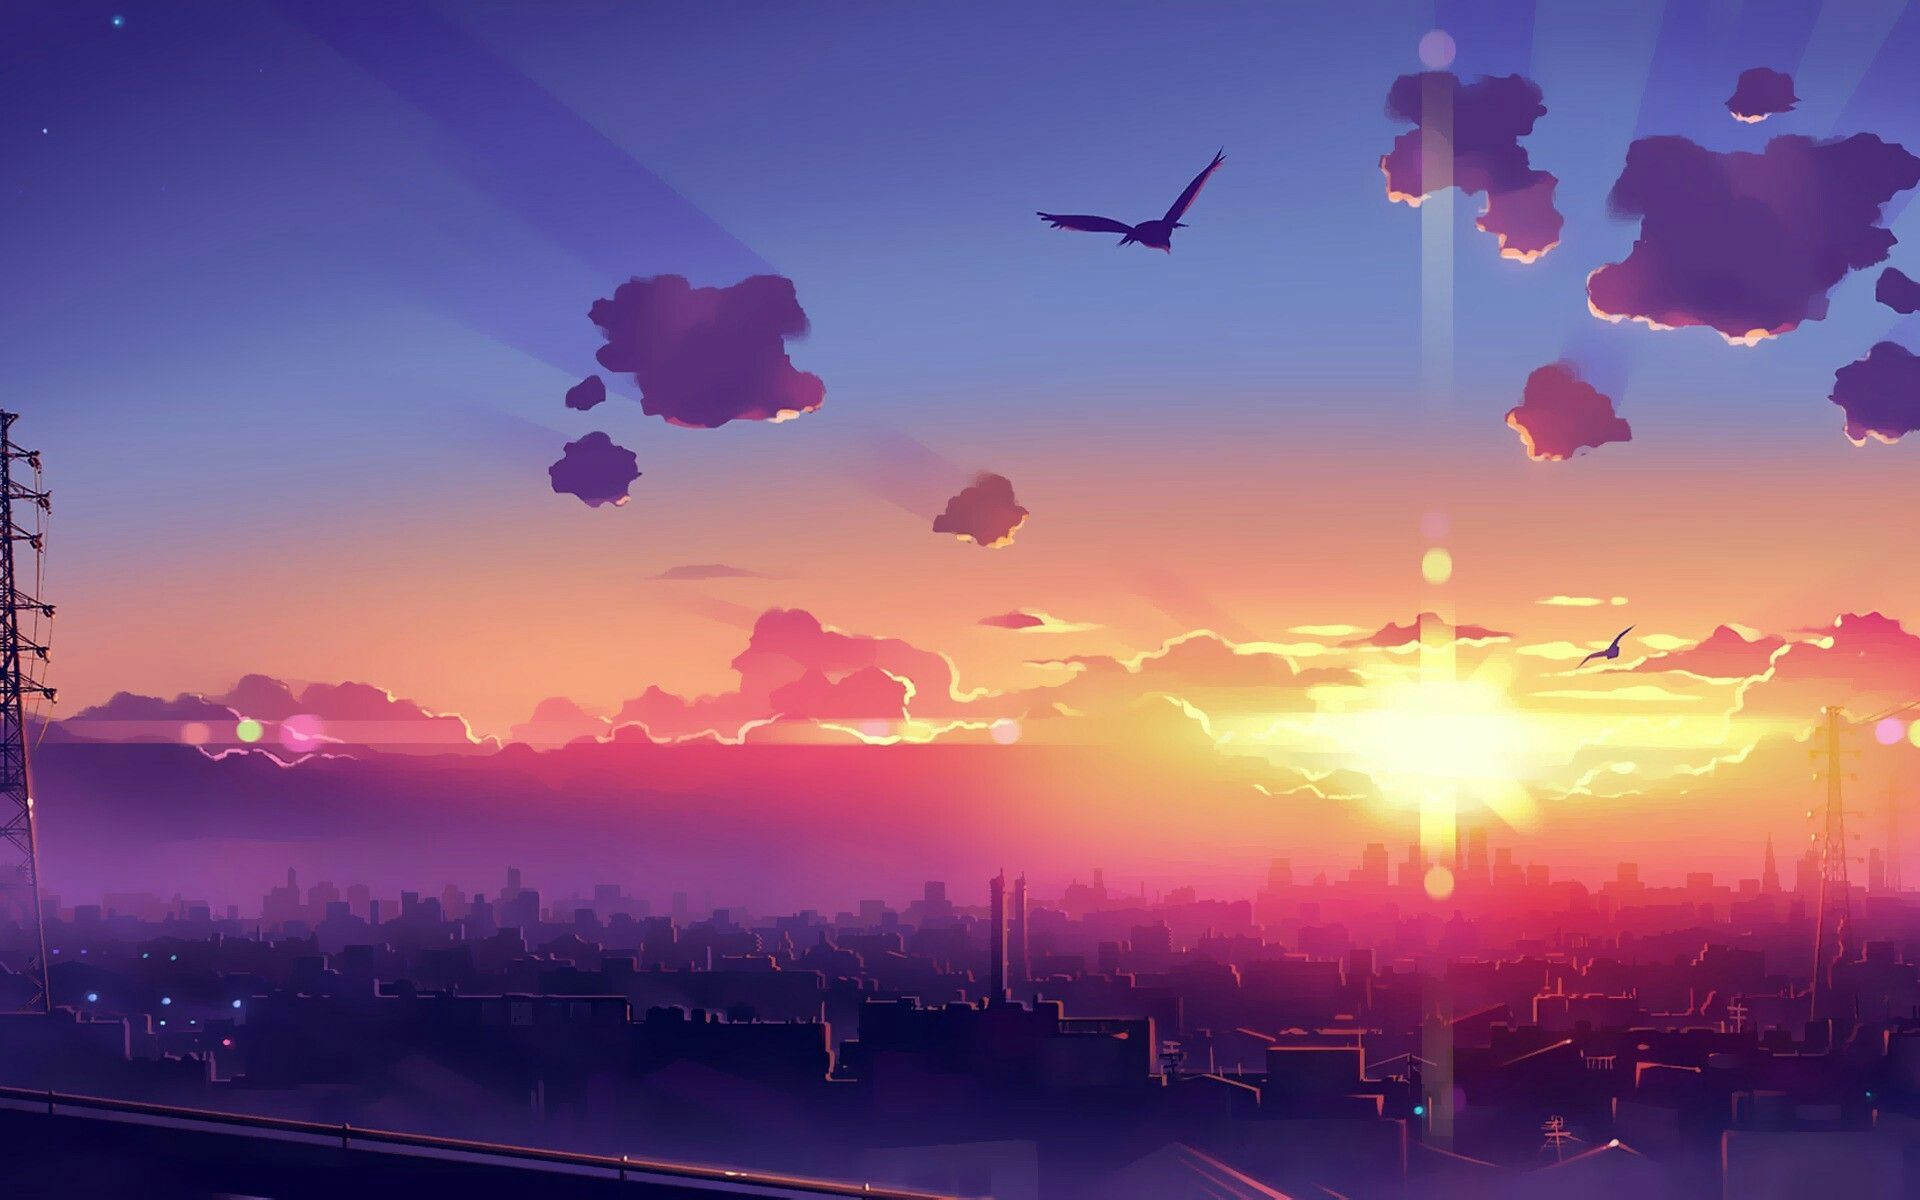 anime world HD place Anime scenery wallpaper, Anime